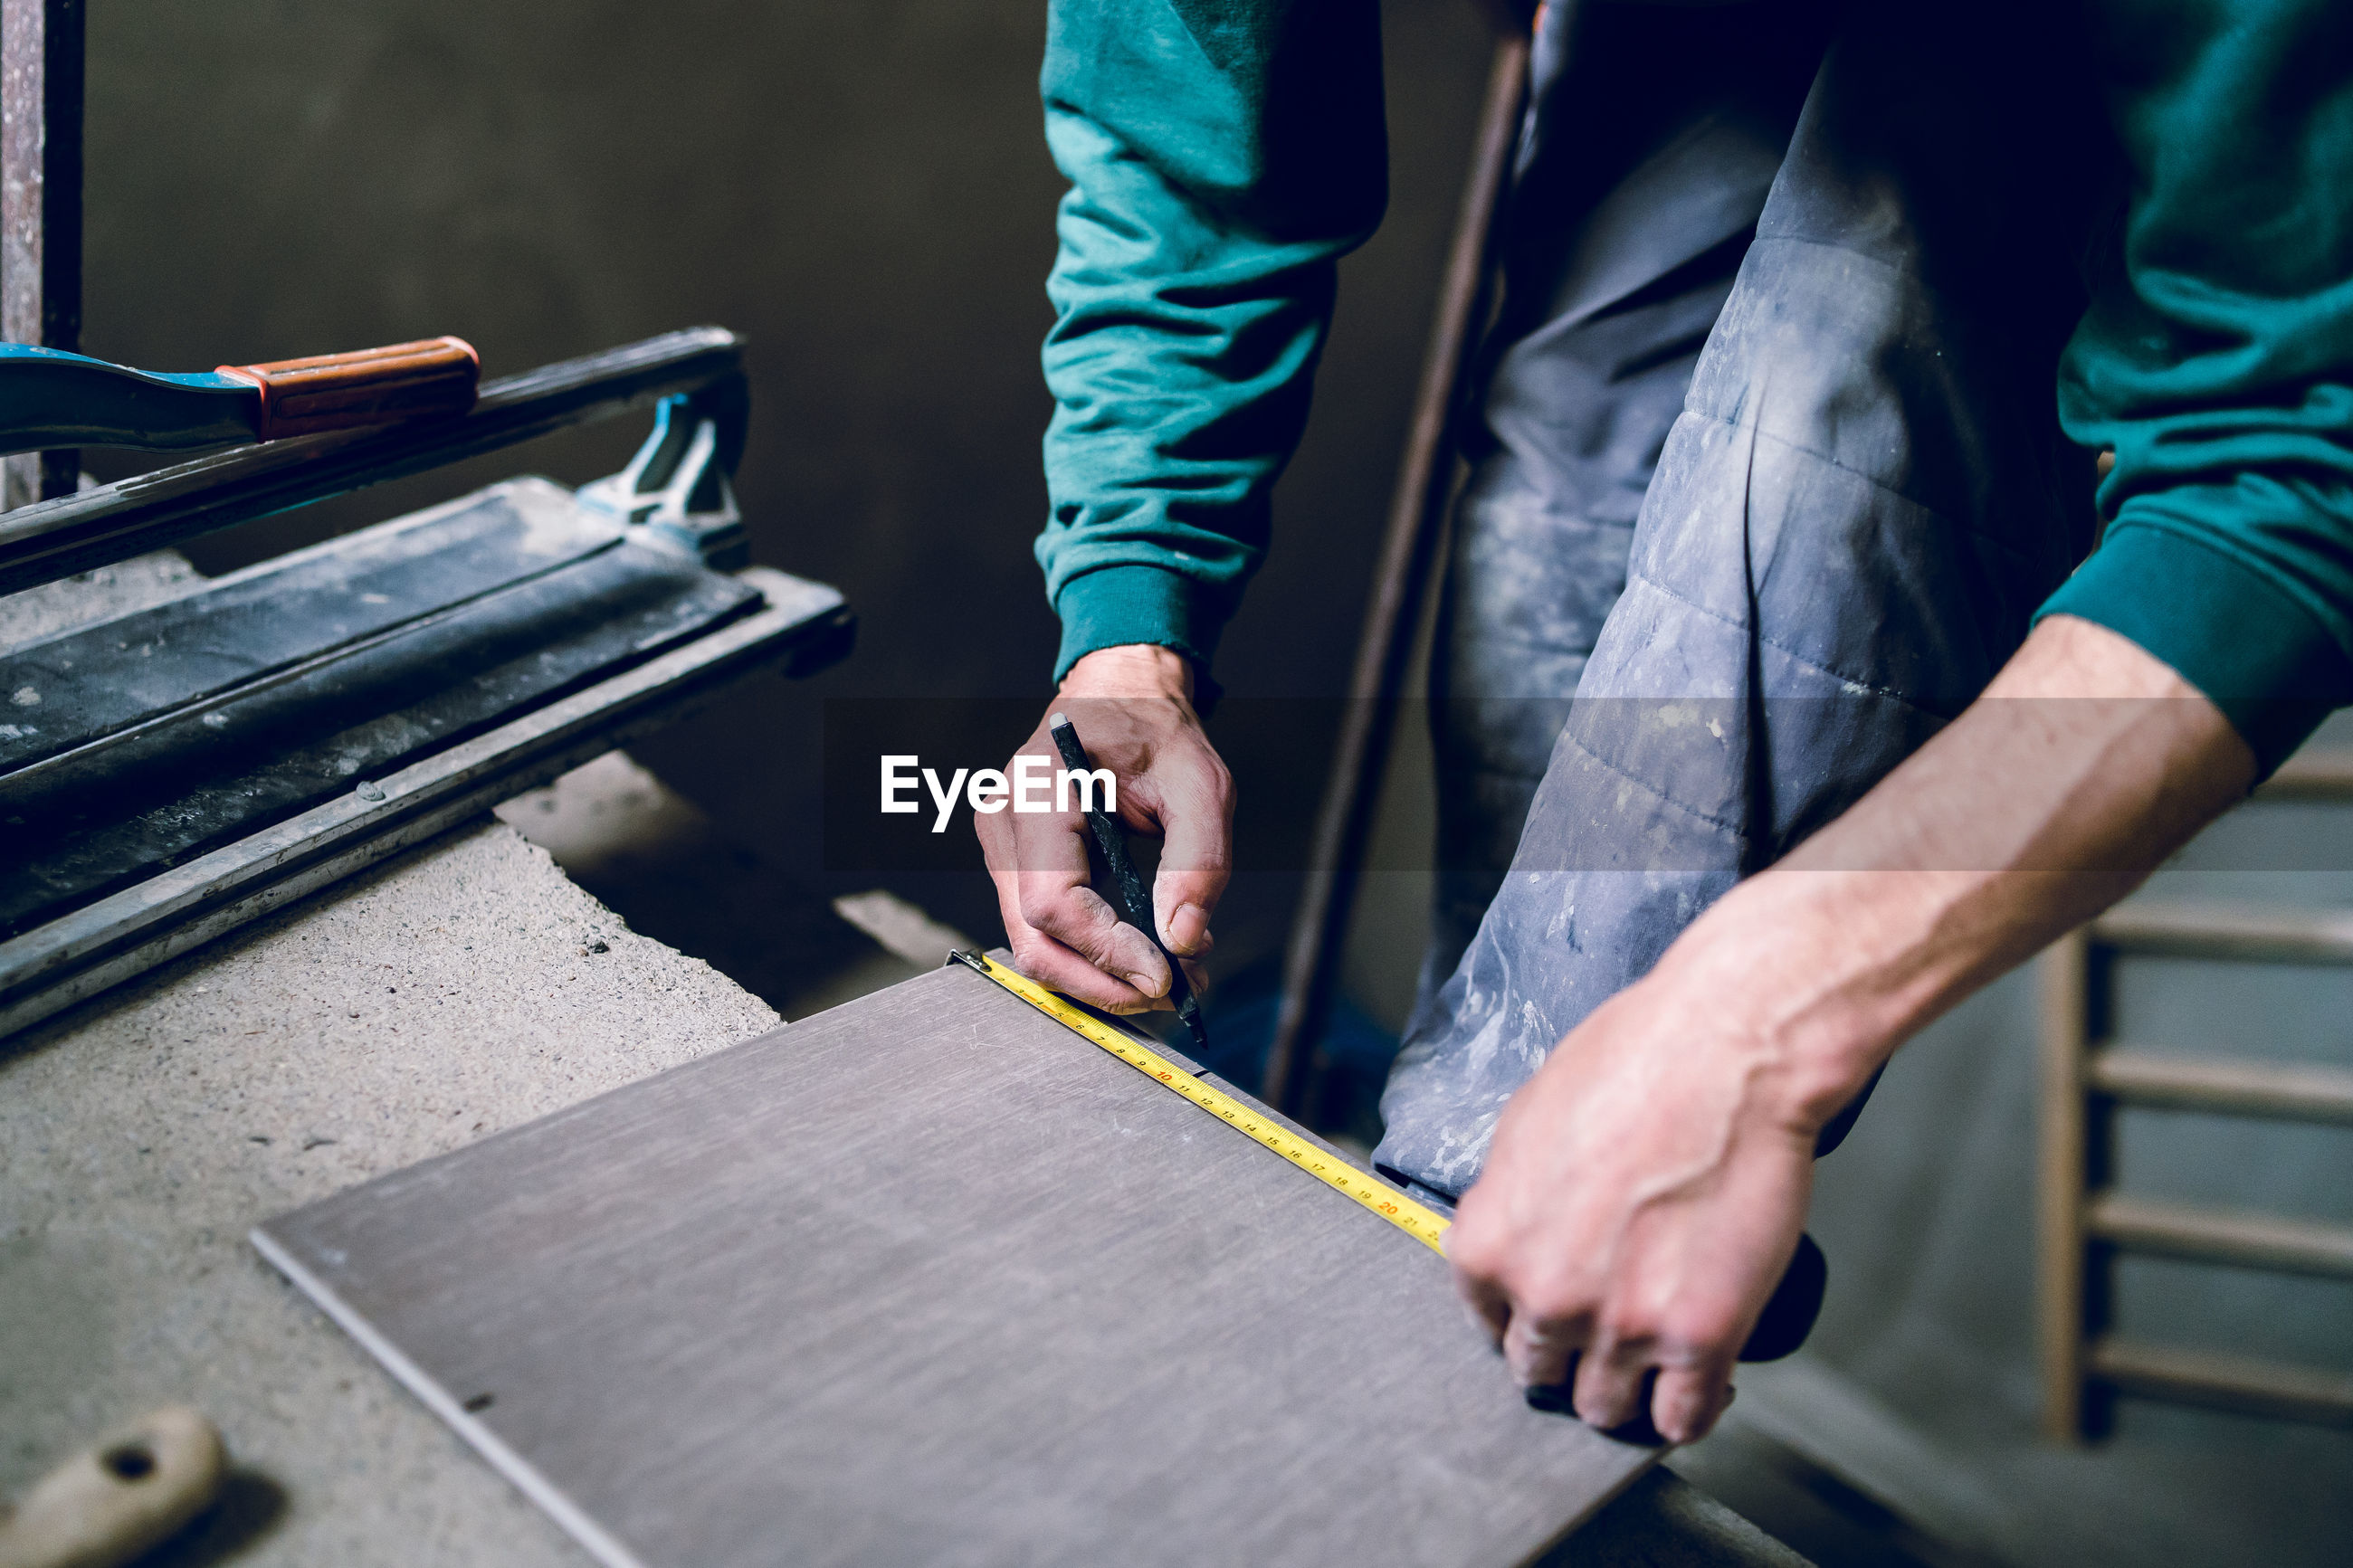 Cropped image of male worker measuring wood at table